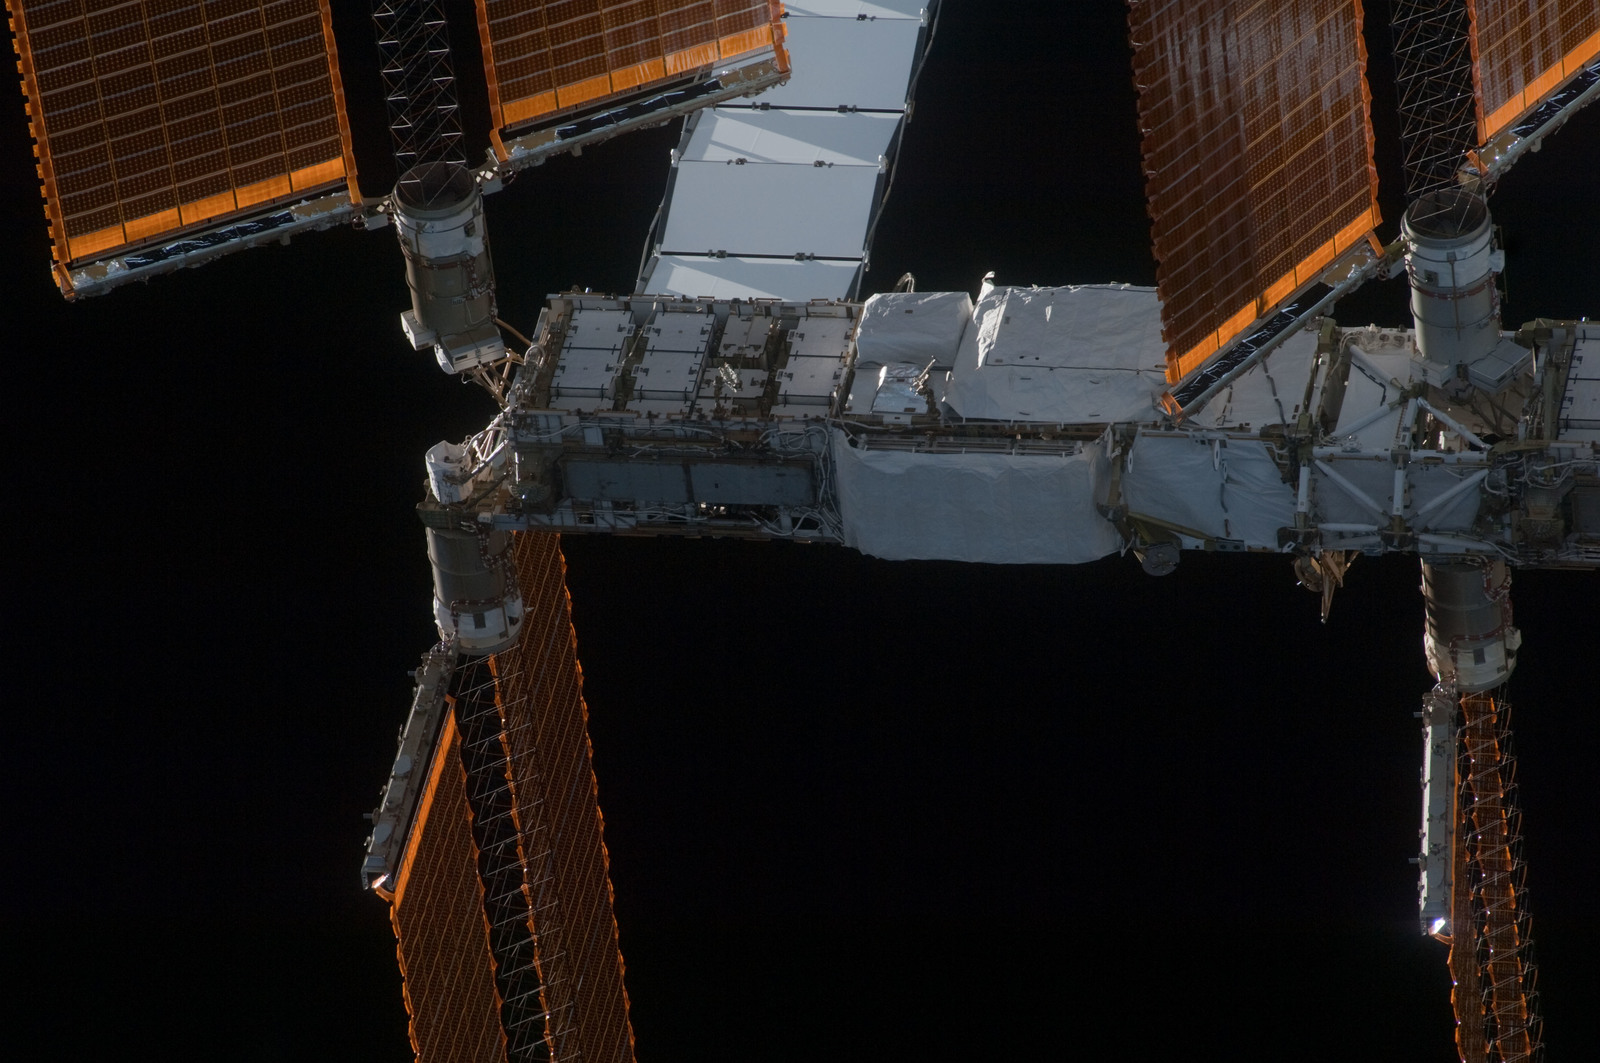 S128E009845 - STS-128 - ISS Flyaround views from STS-128